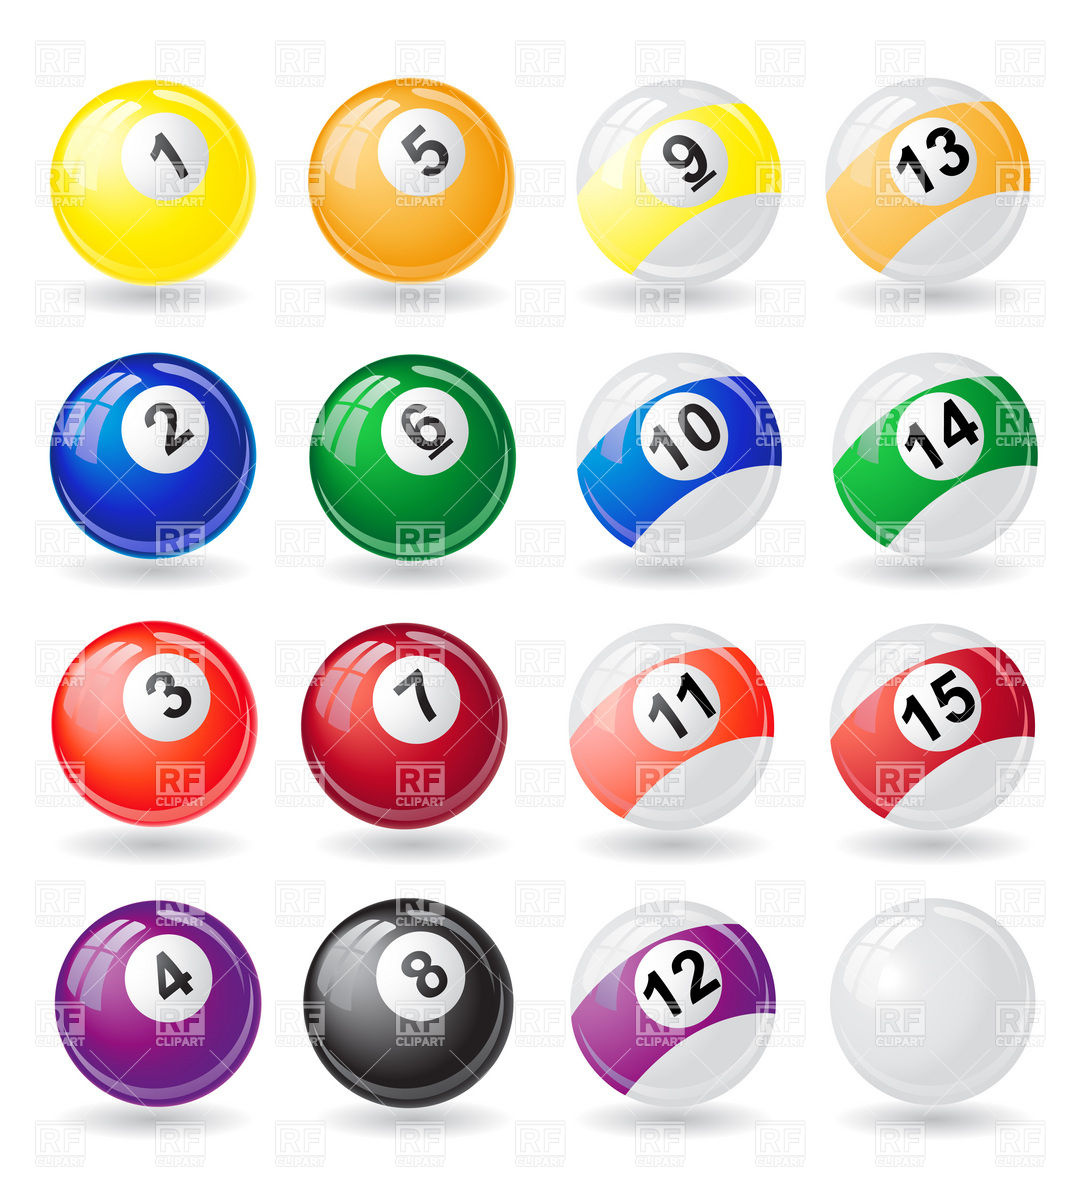 Billiards 8 Ball Pool Rack Clipart Free Clip Art Images #YDXZTj.